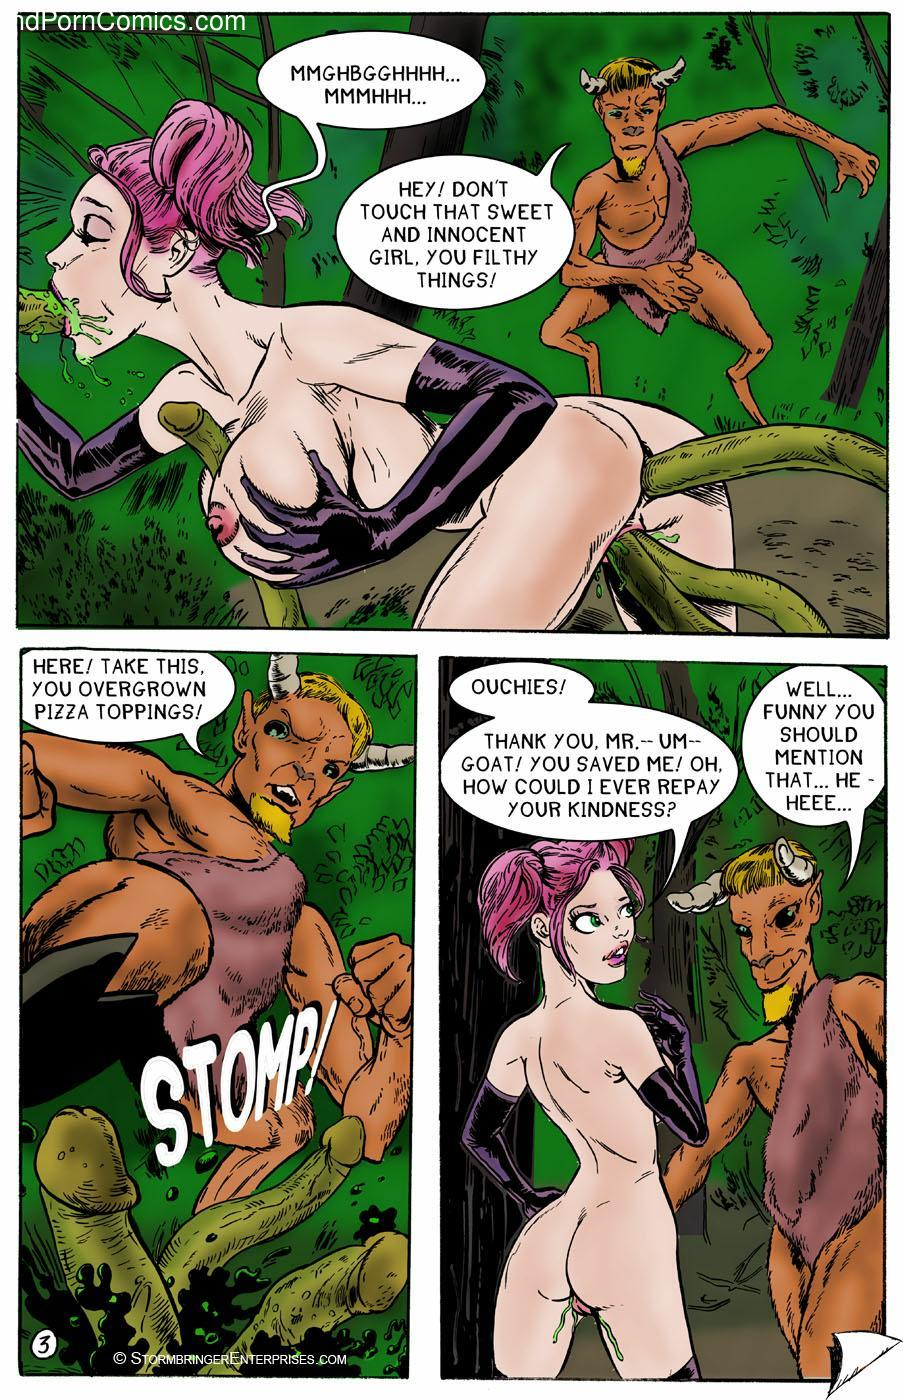 Erotic Adventures of Candice 01-1870 free sex comic